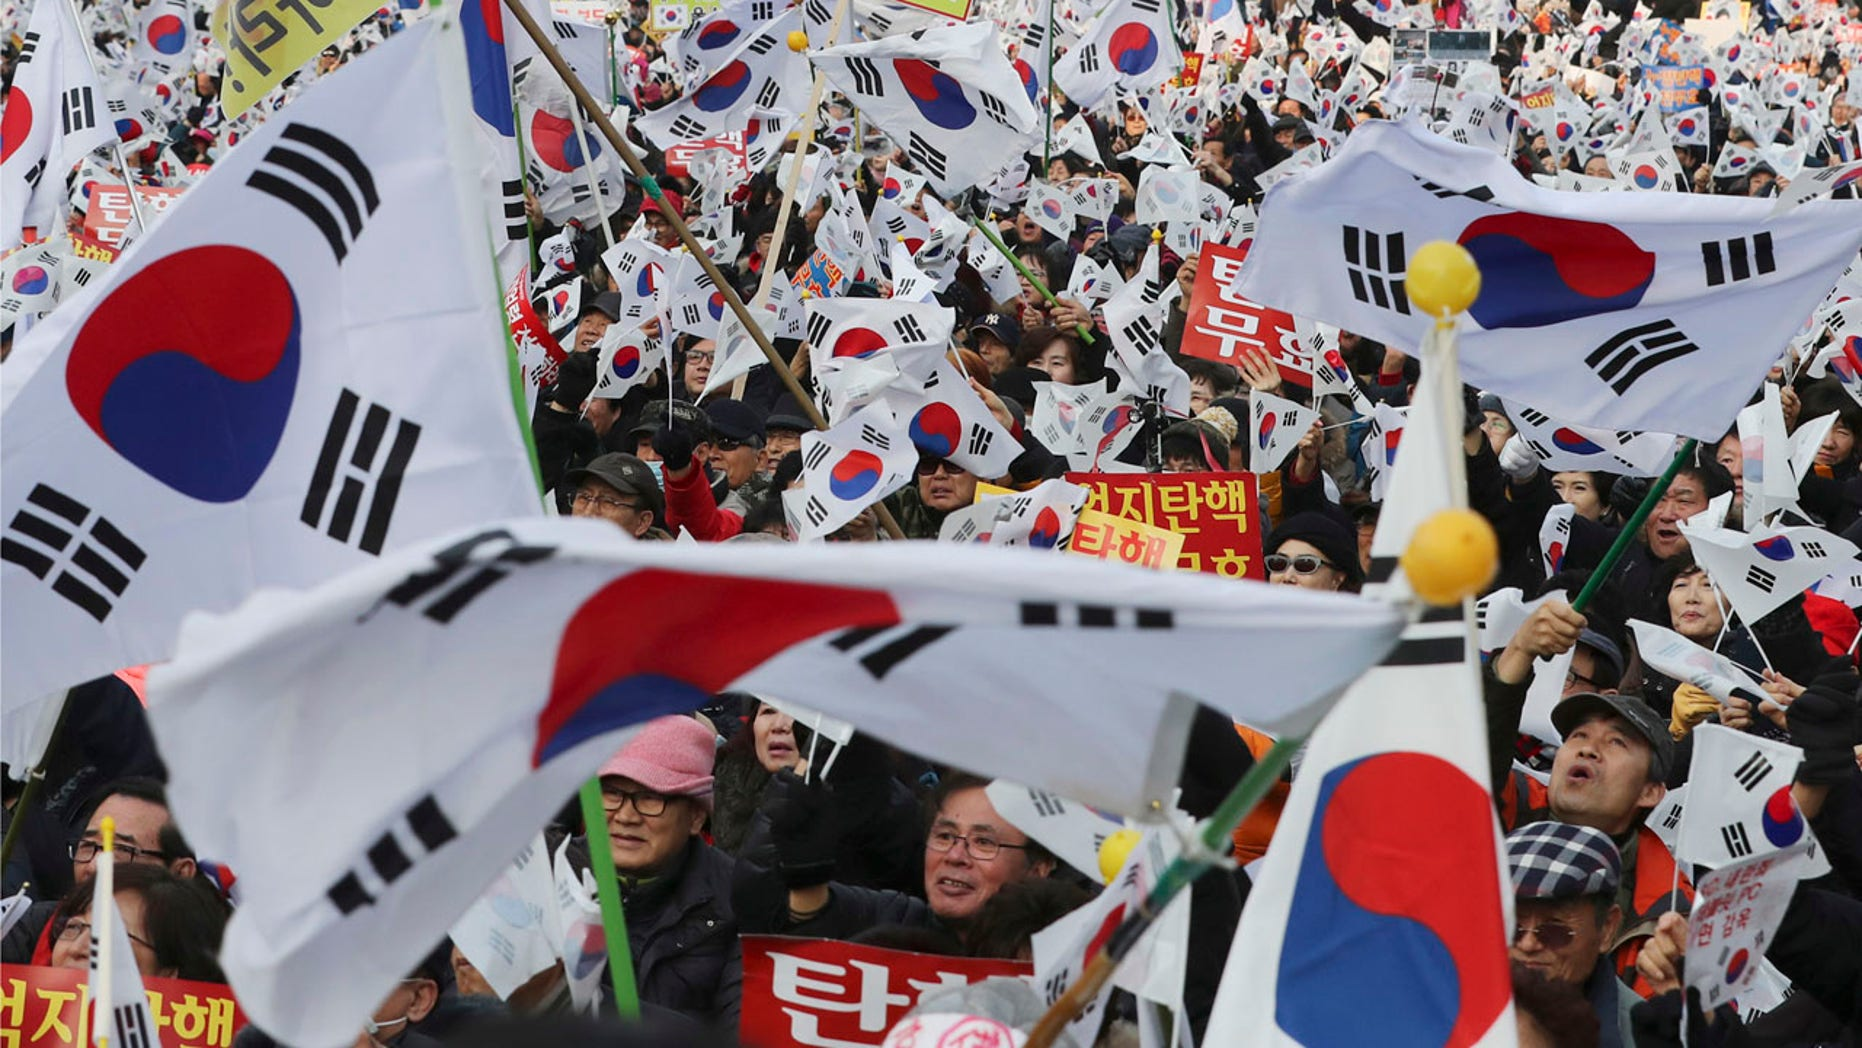 Supporters of South Korean President Park Geun-hye wave their national flags during a rally opposing her impeachment in Seoul, South Korea, Saturday, Dec. 31, 2016.